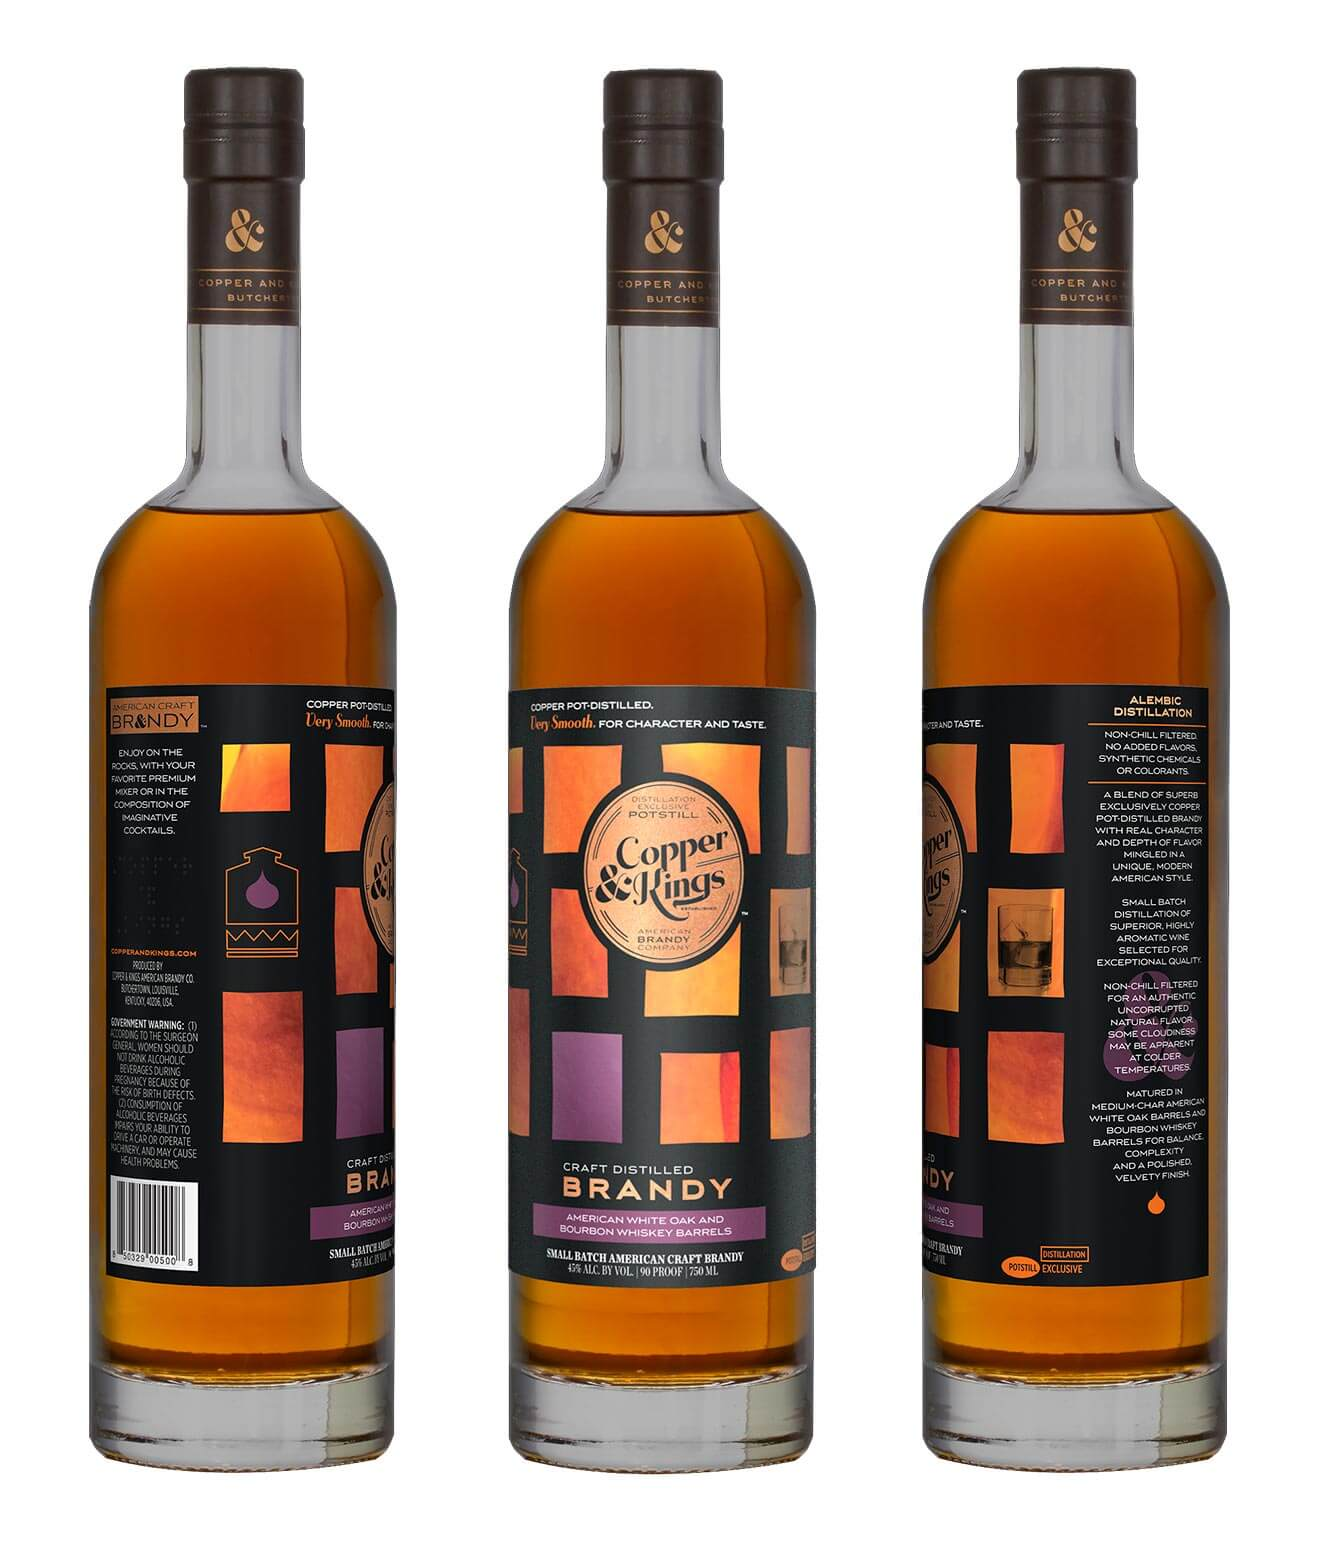 Copper & Kings Craft Distilled Brandy